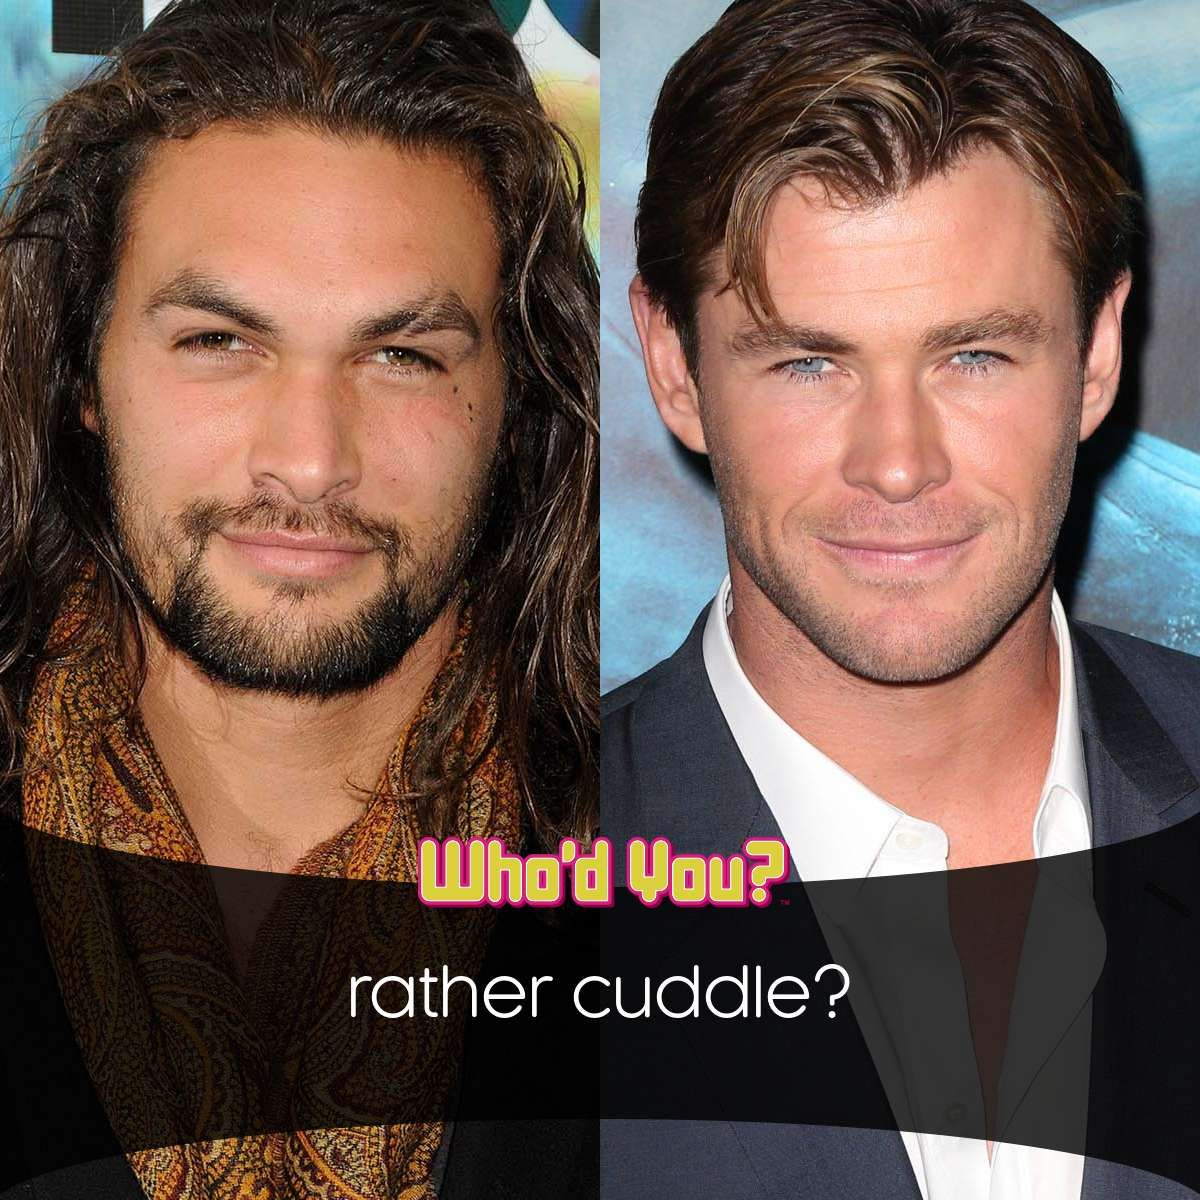 Would You Rather Cuddle Jason Momoa Or Chris Hemsworth?